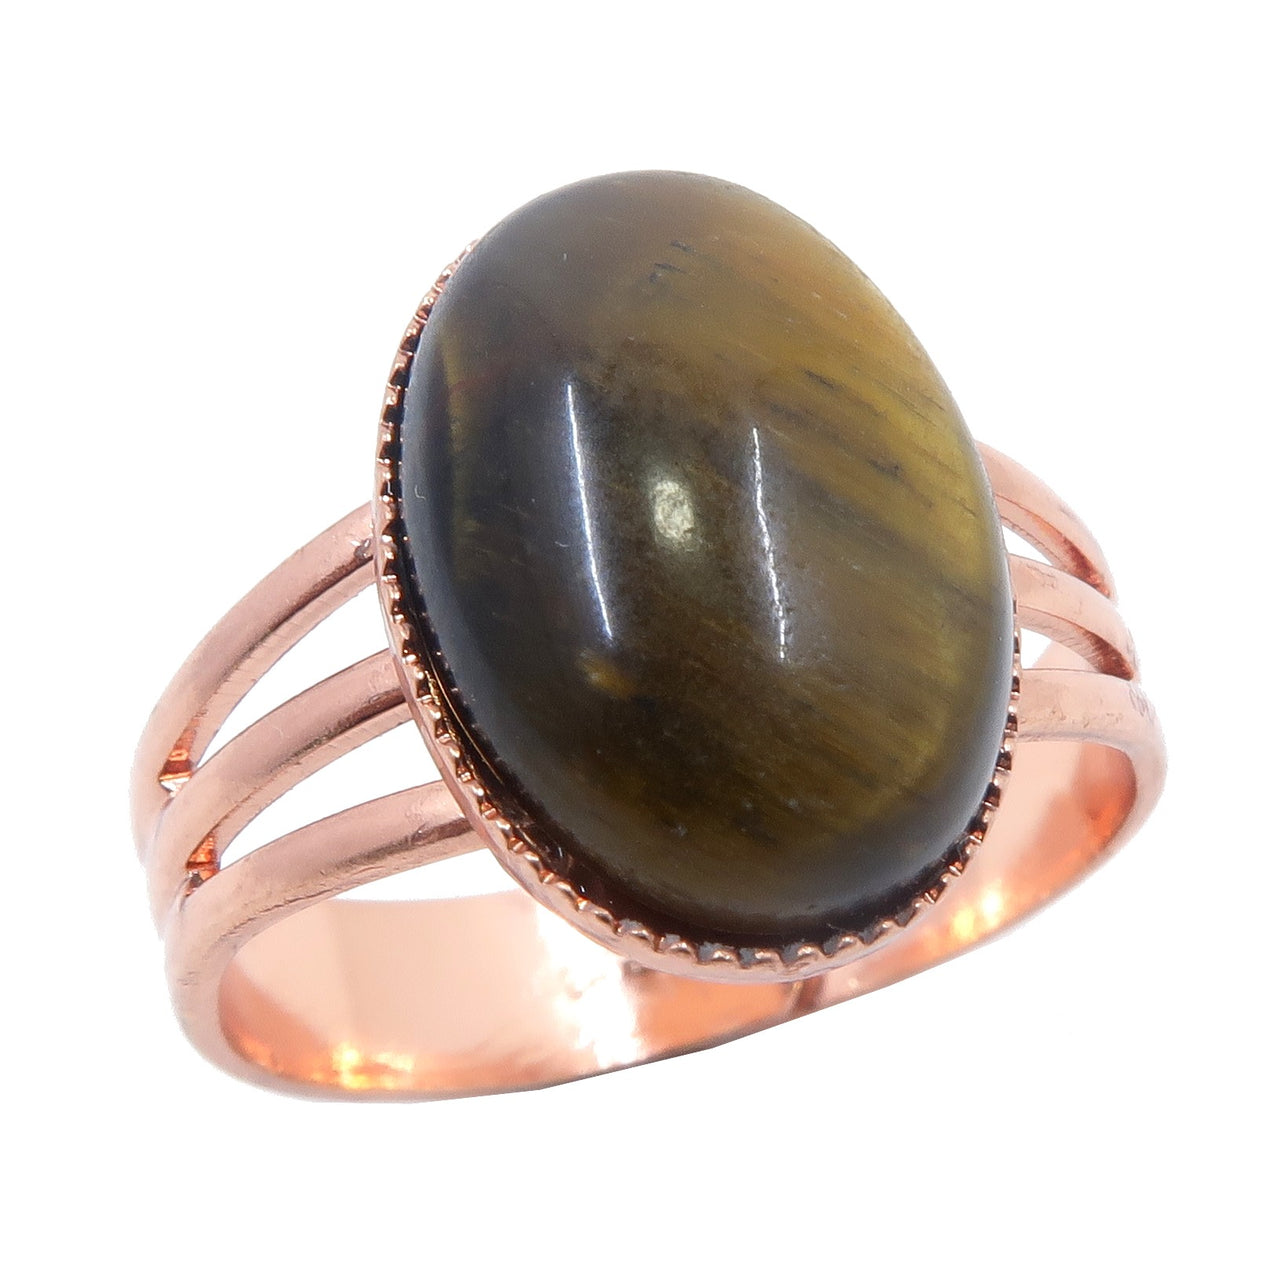 Tigers Eye Golden Ring 4-10 Boutique Brown Oval Healing Stone Adjustable B01 (Copper)